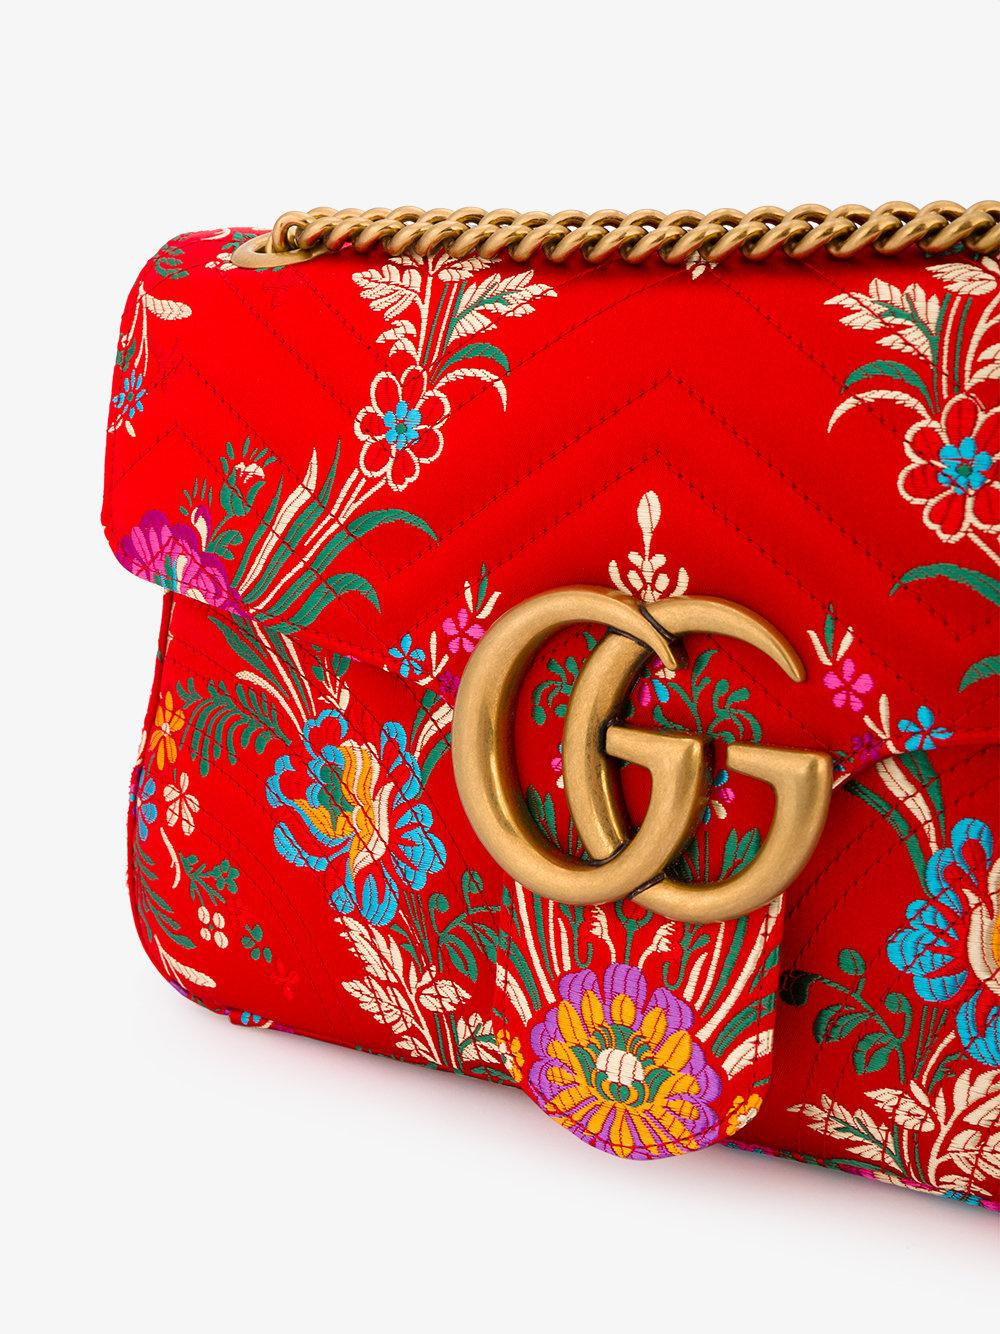 d8d272eb7d53 Gucci Red Medium Marmont 2.0 Floral Print Shoulder Bag in Red - Lyst